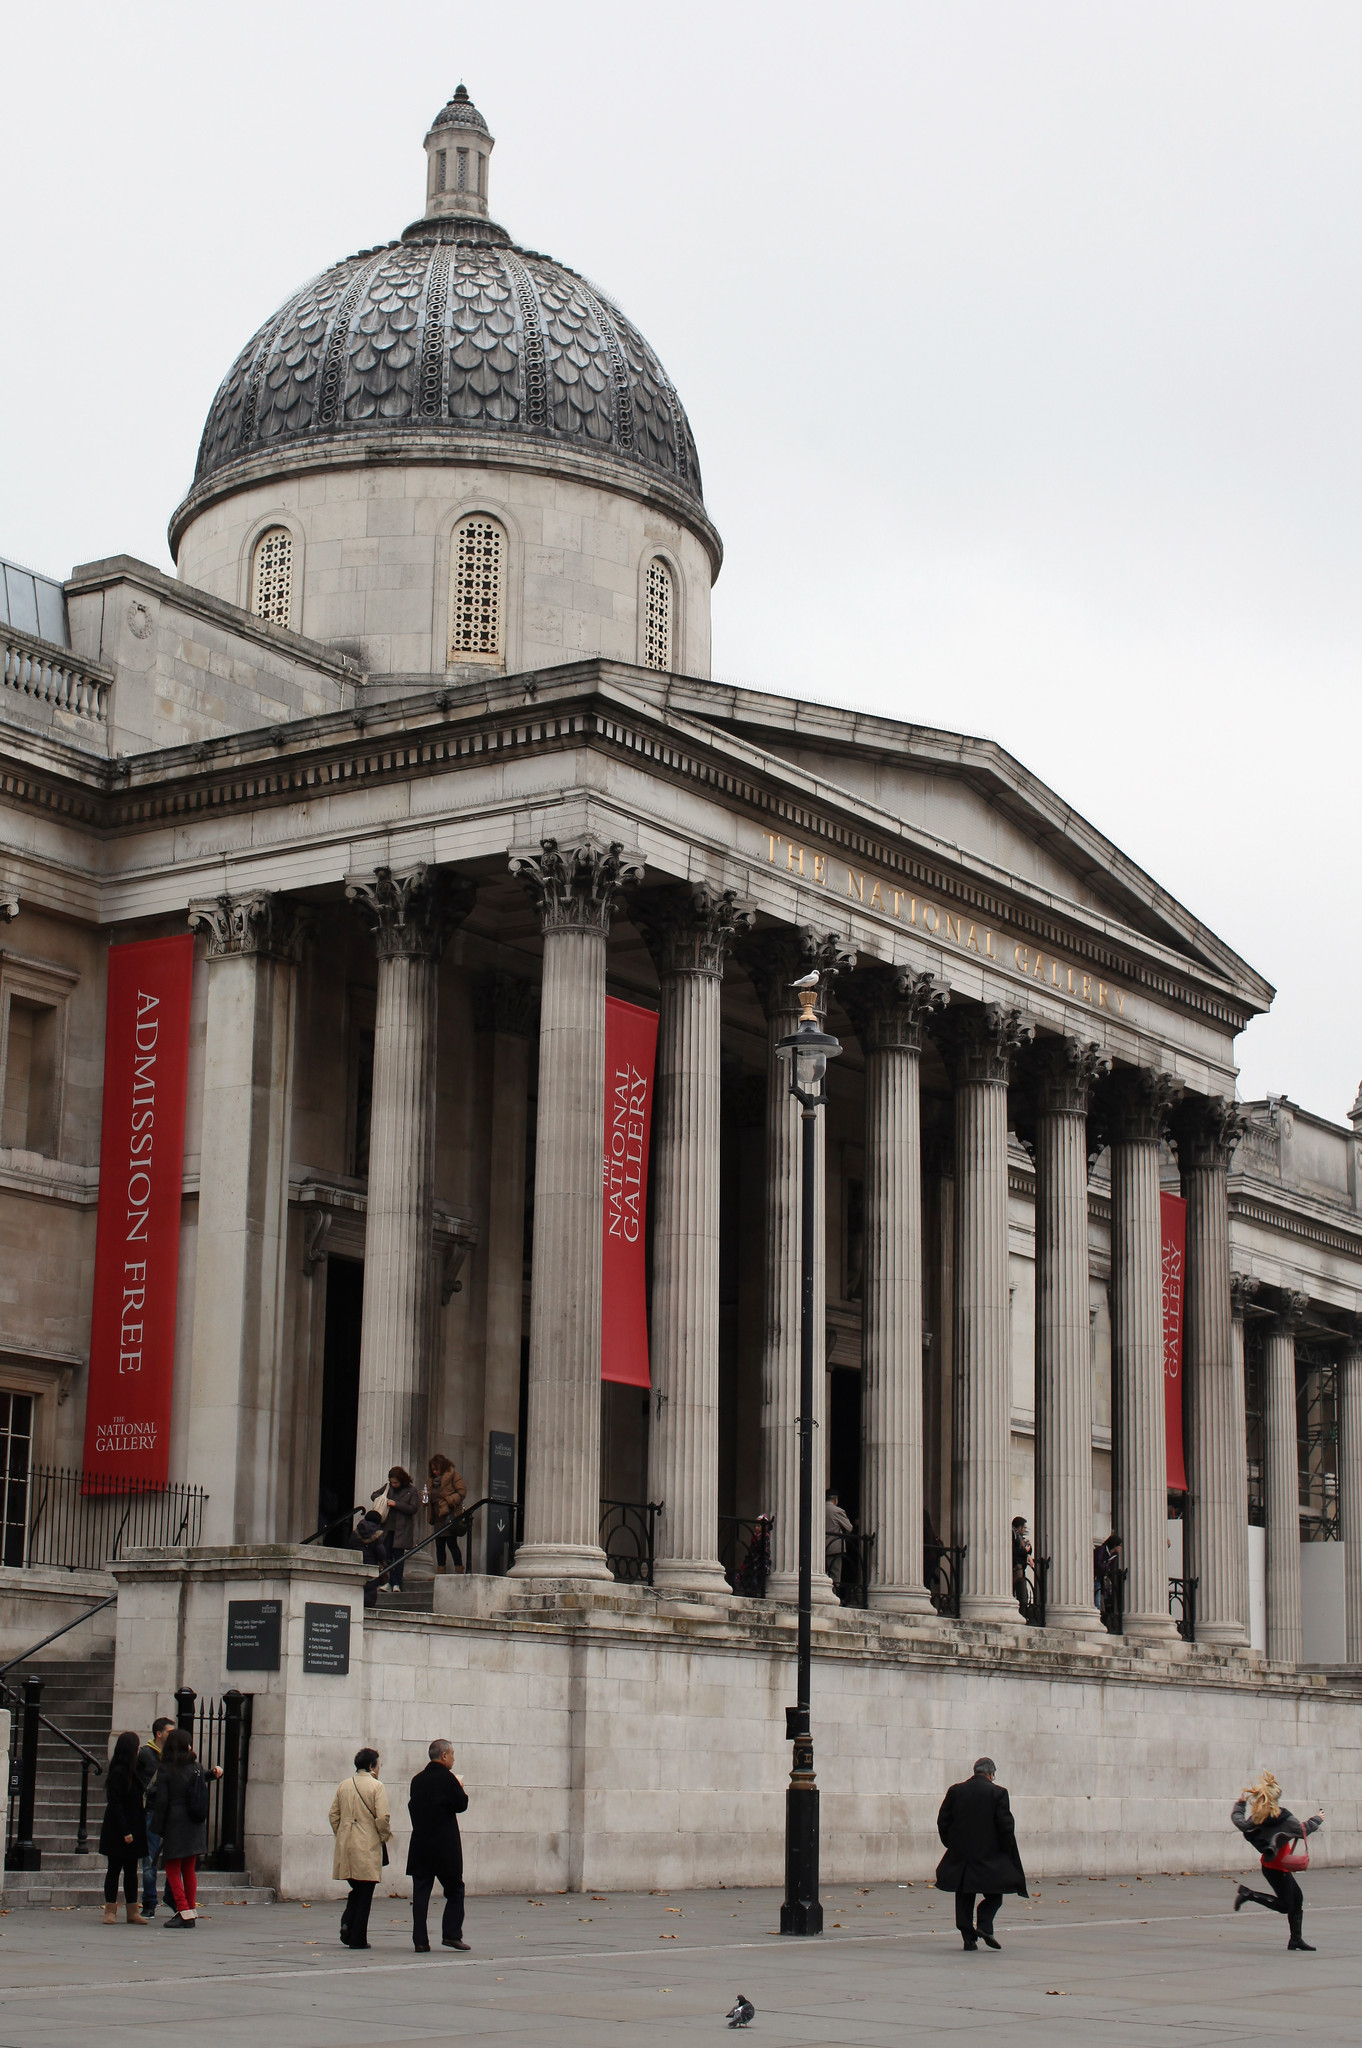 Free and inexpensive things to see and do in London - National Gallery